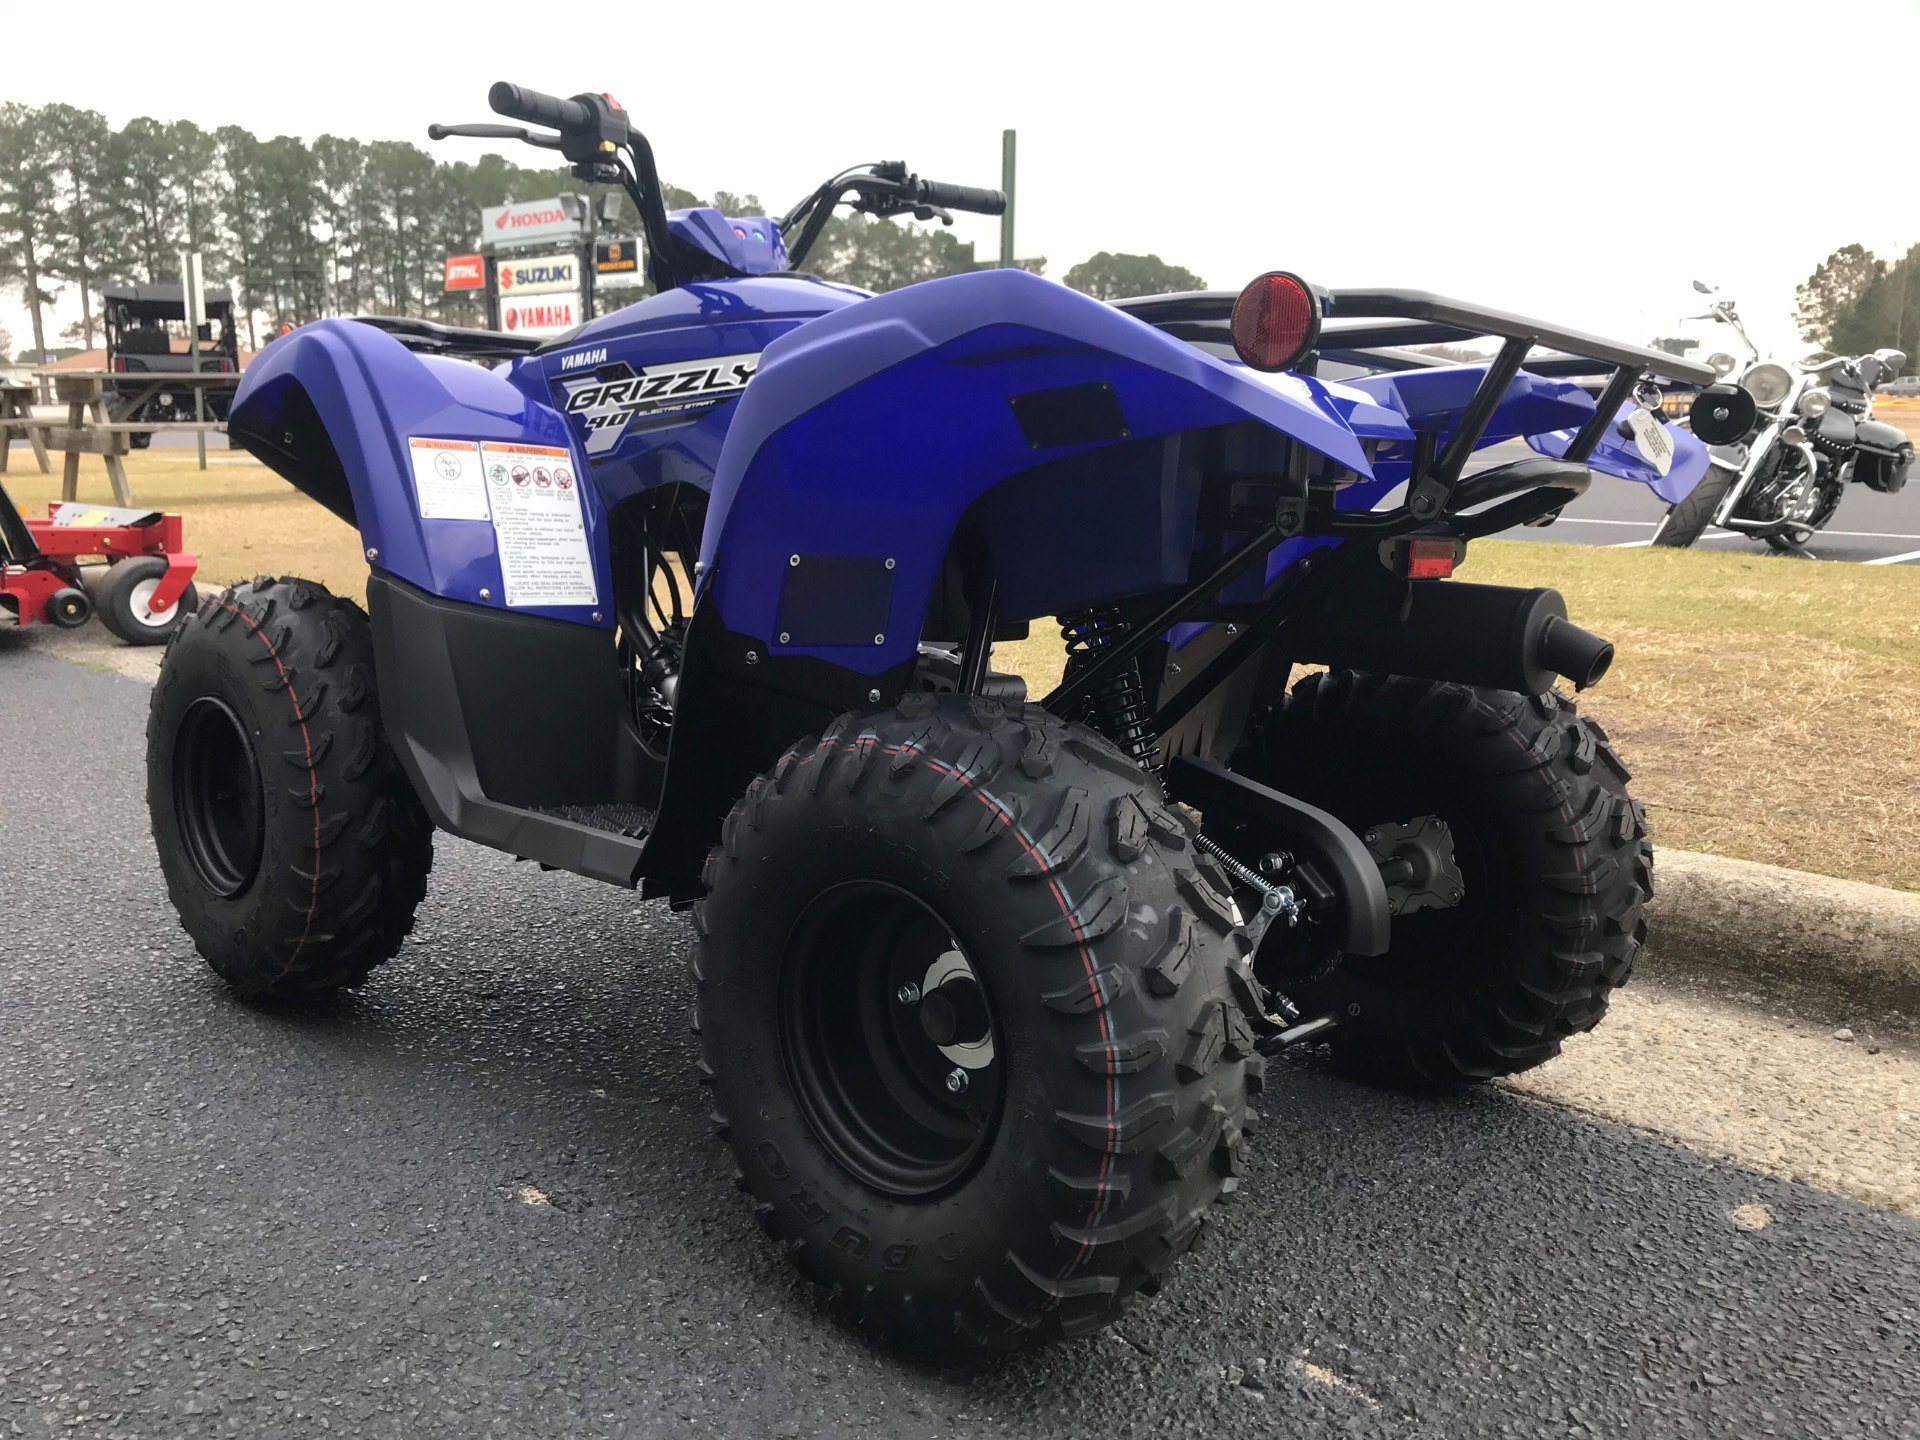 2019 Yamaha Grizzly 90 in Greenville, North Carolina - Photo 8